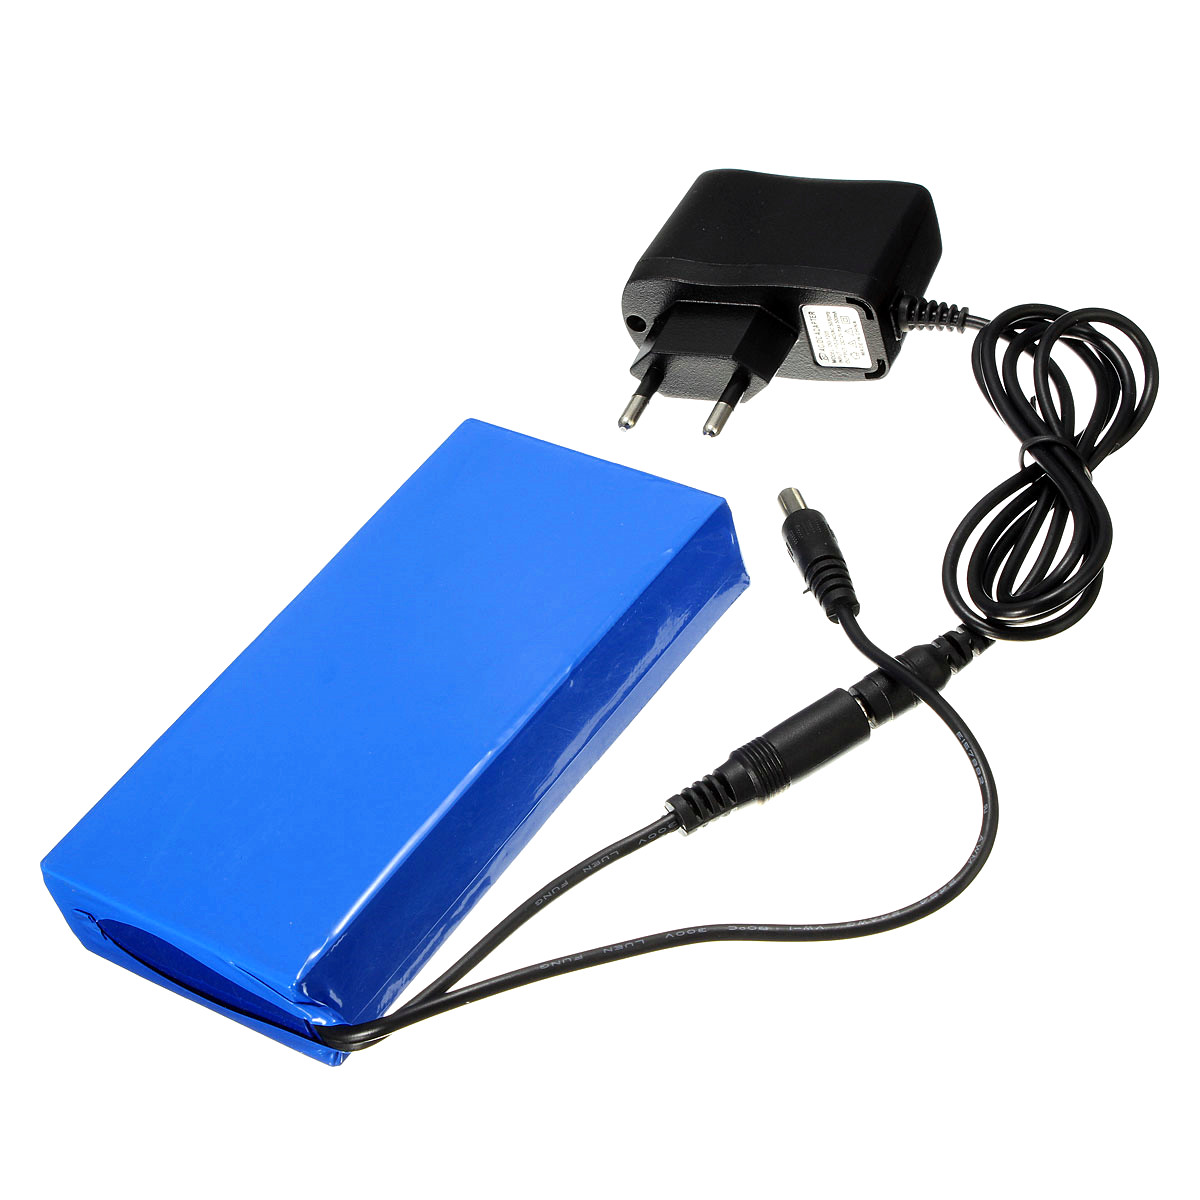 dc 12v 1800mah rechargeable li ion lithium ion batterie chargeur power eu plug ebay. Black Bedroom Furniture Sets. Home Design Ideas